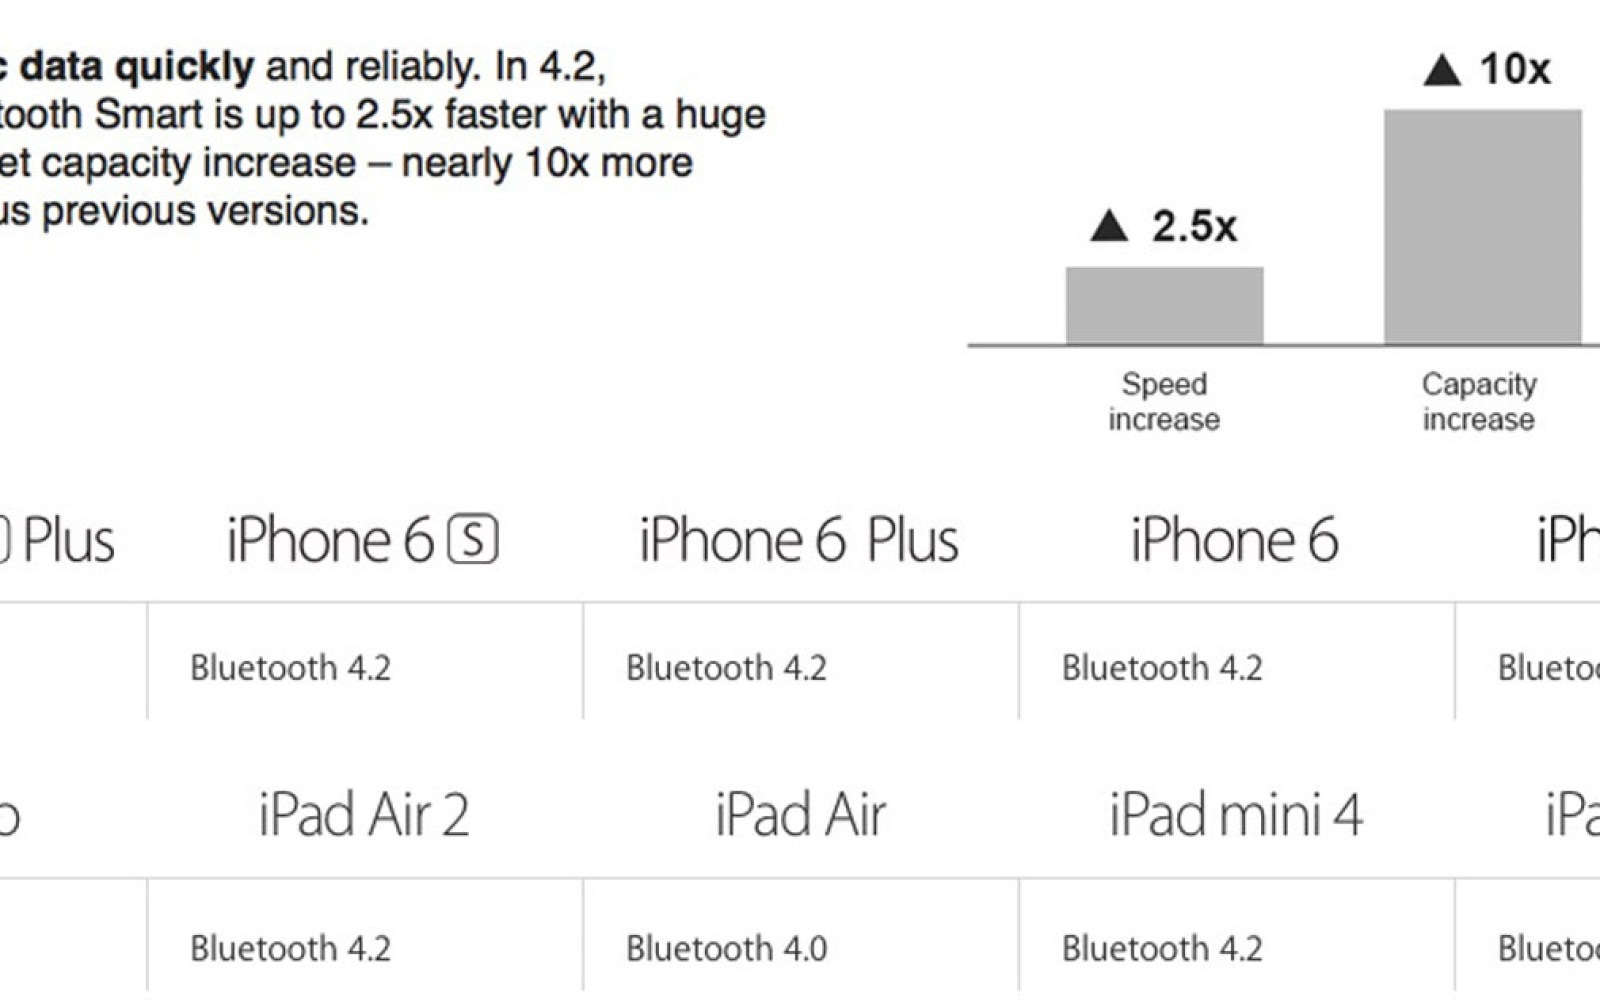 Apple adds Bluetooth 4.2 to iPhone 6, iPhone 6 Plus and iPad Air 2